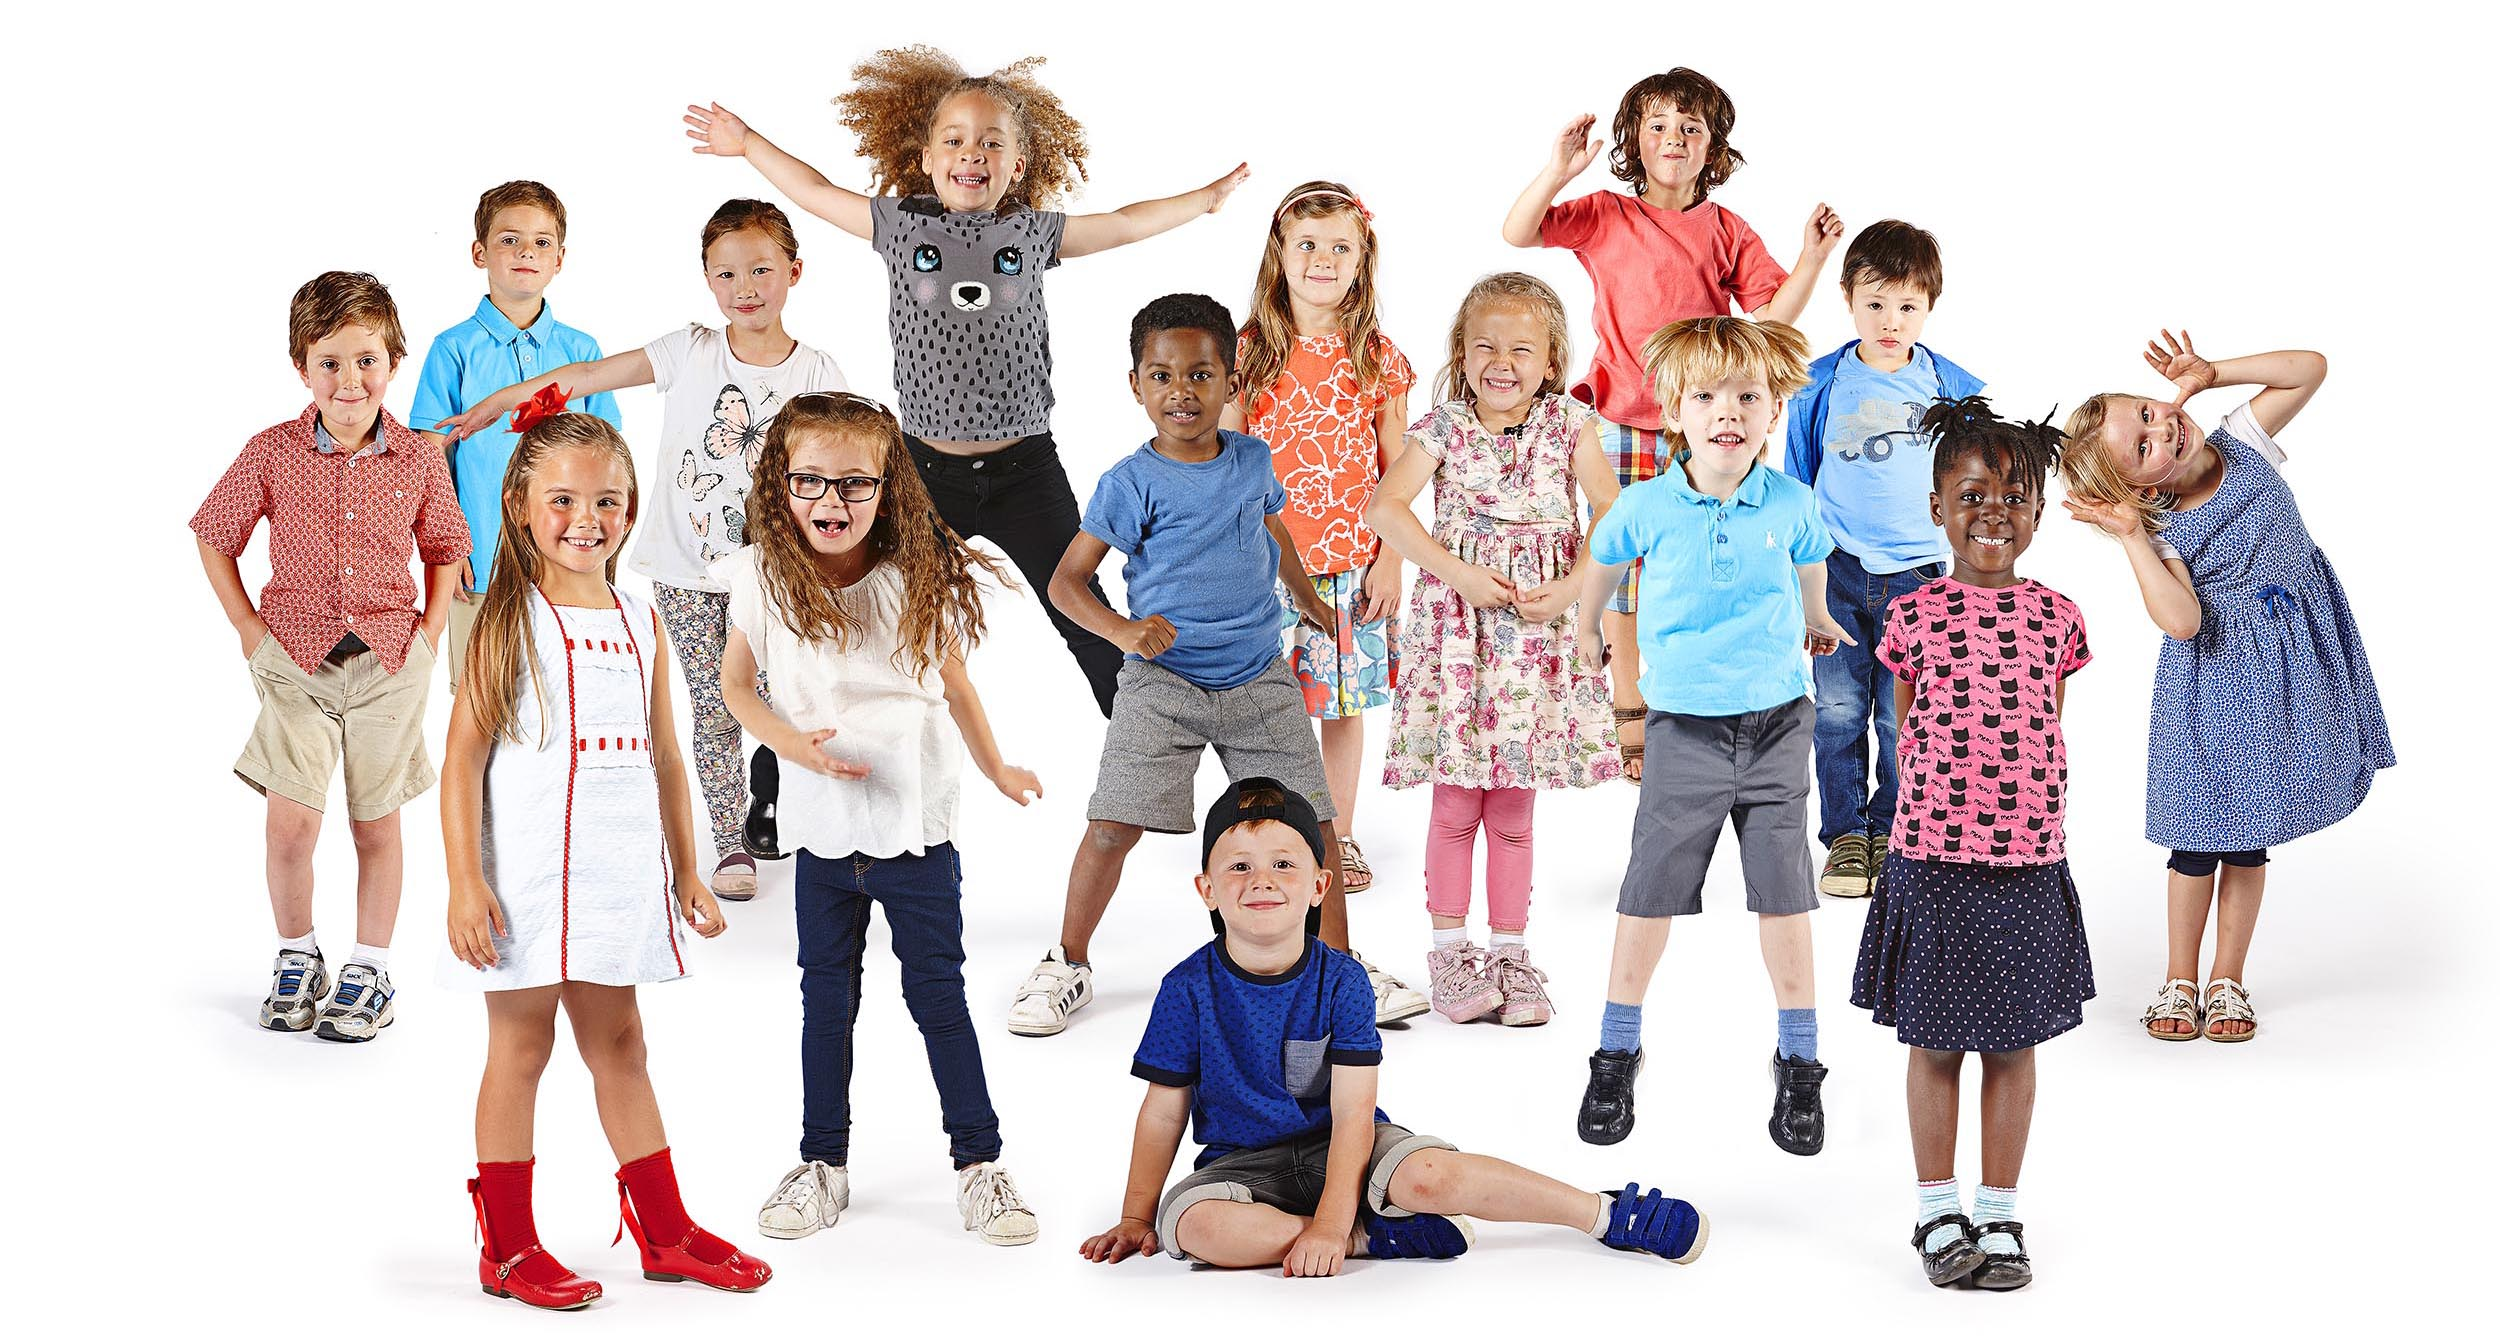 Front row Sienna (red socks and shoes), Emily (glasses), George (sitting down), Alfie (turquoise polo, blond hair), Ruth (pink and black print top). Back row: Arthur (beige shorts and trainers), Charlie, Brooke, Jaja, Devan, Olive (orange print top), Lily (clasping hands), Joshua, Ferdinand (blue t-shirt and jacket) and Emilia (blue dress).